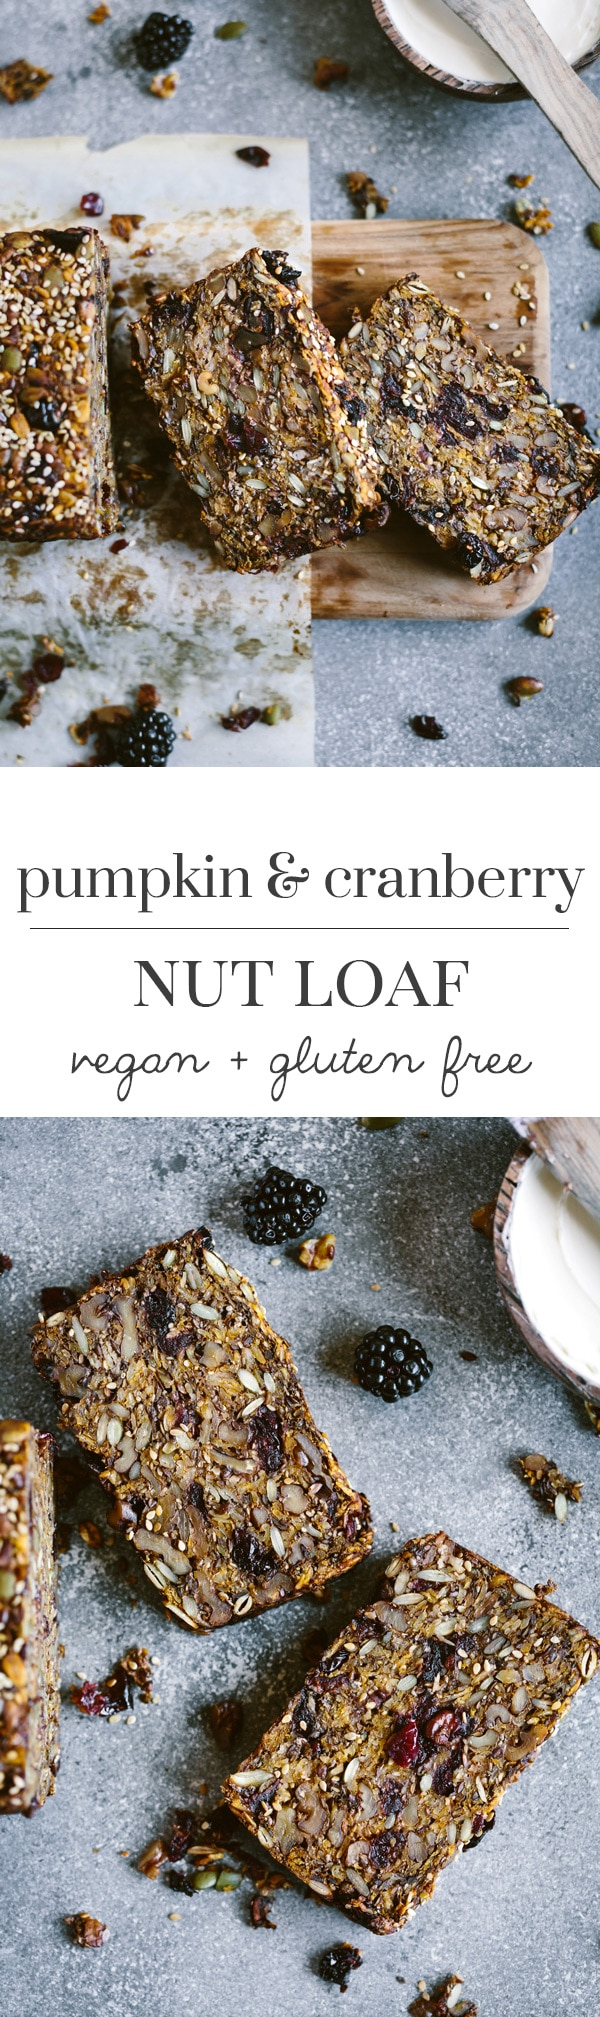 Pumpkin Cranberry Nut Loaf Recipe: A vegan and gluten free pumpkin flavored nut bread.